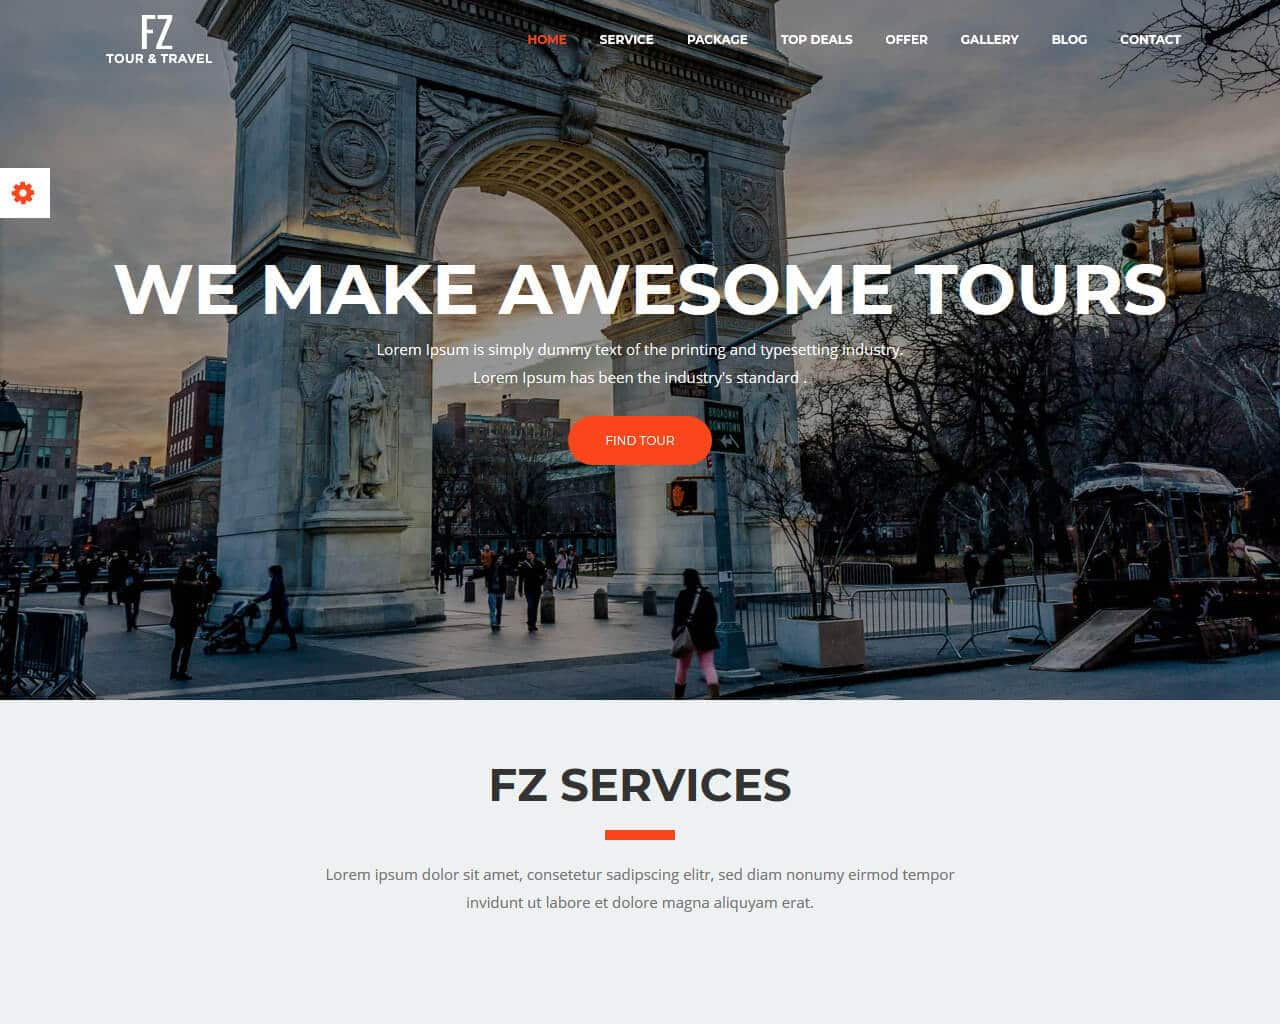 FZ - Tour & Travel Website Template